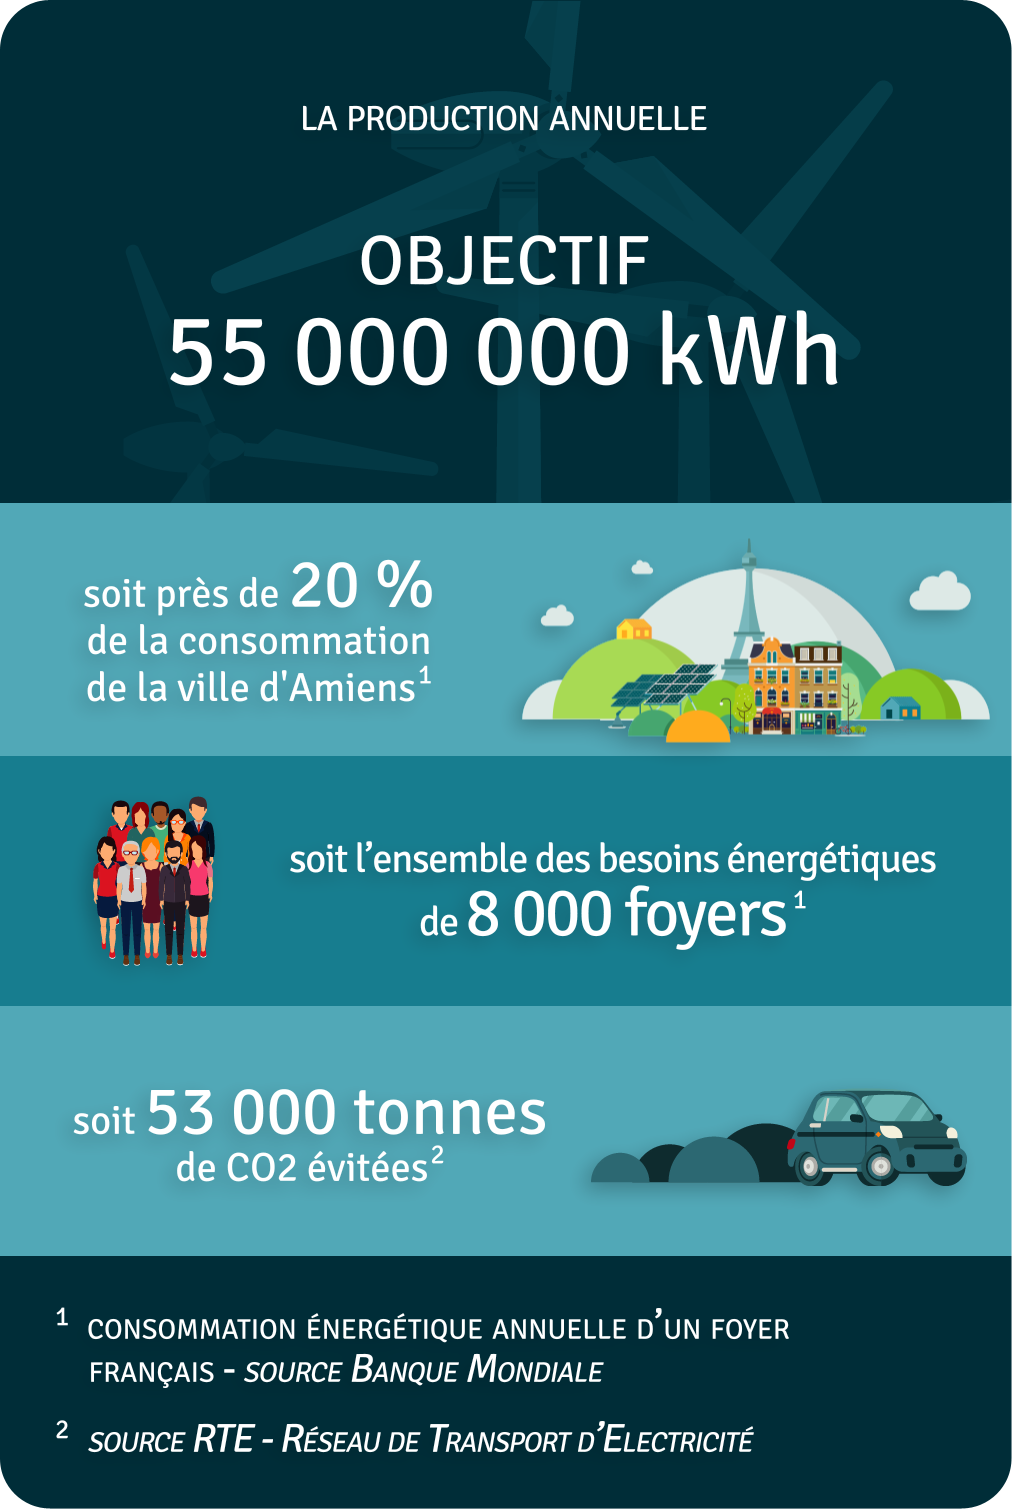 Production annuelle 55 000 000 kWh